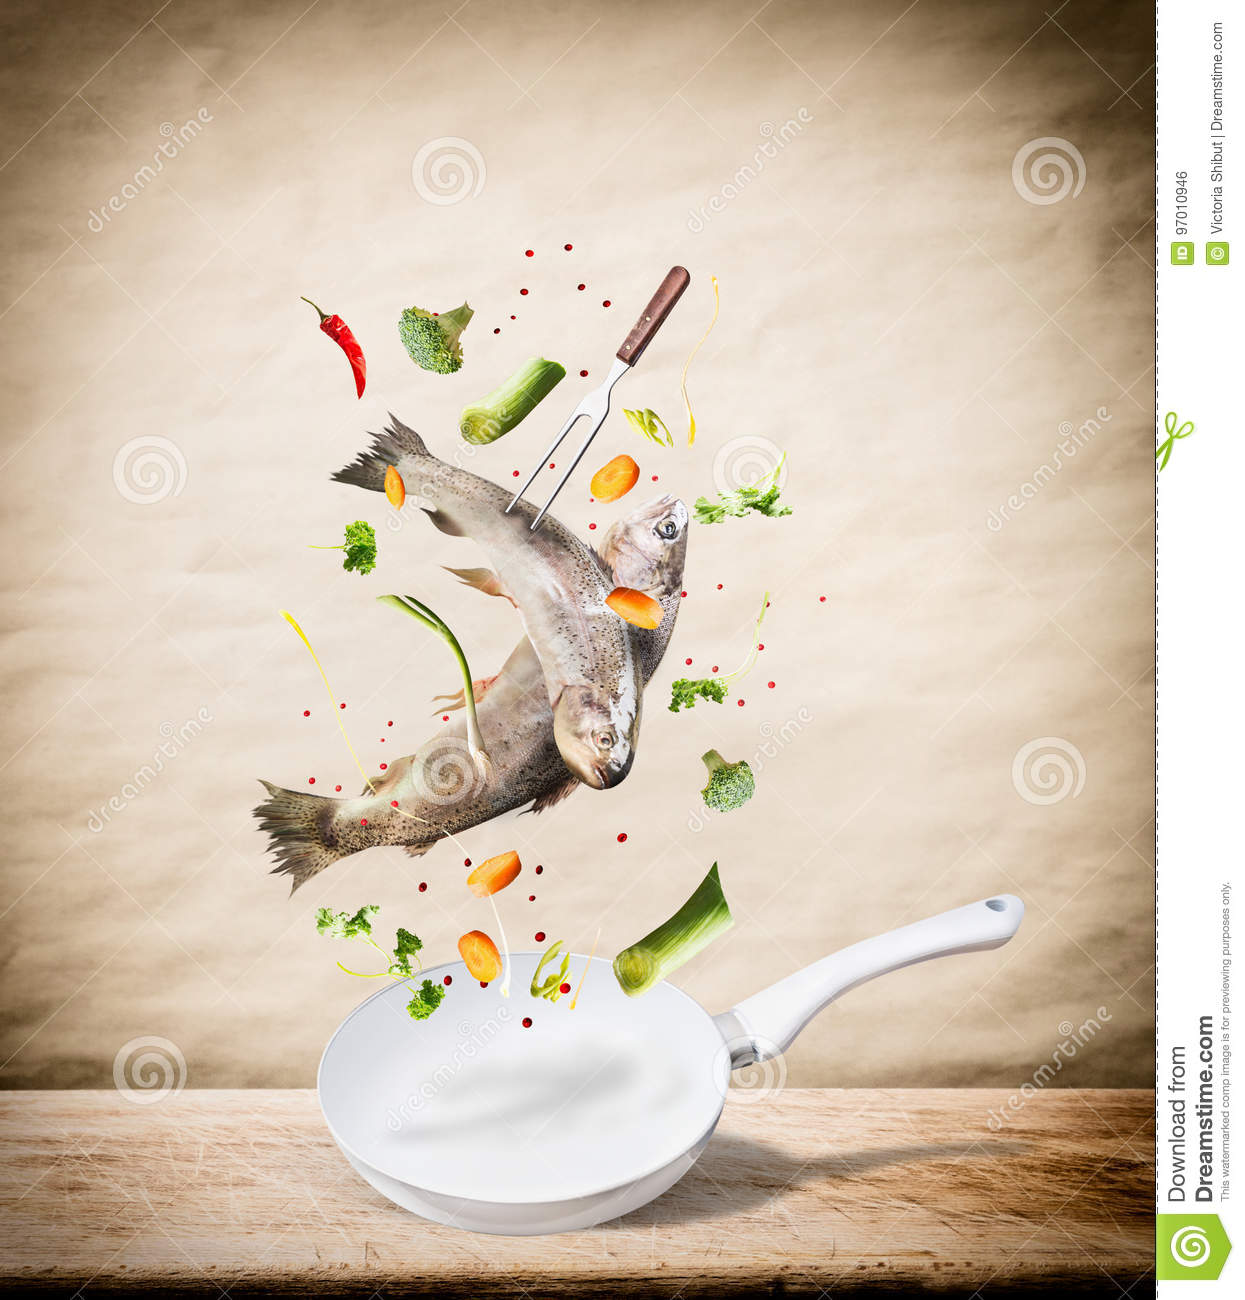 Flying Raw Whole Trout Fishes With Vegetables, Oil And Spices ...